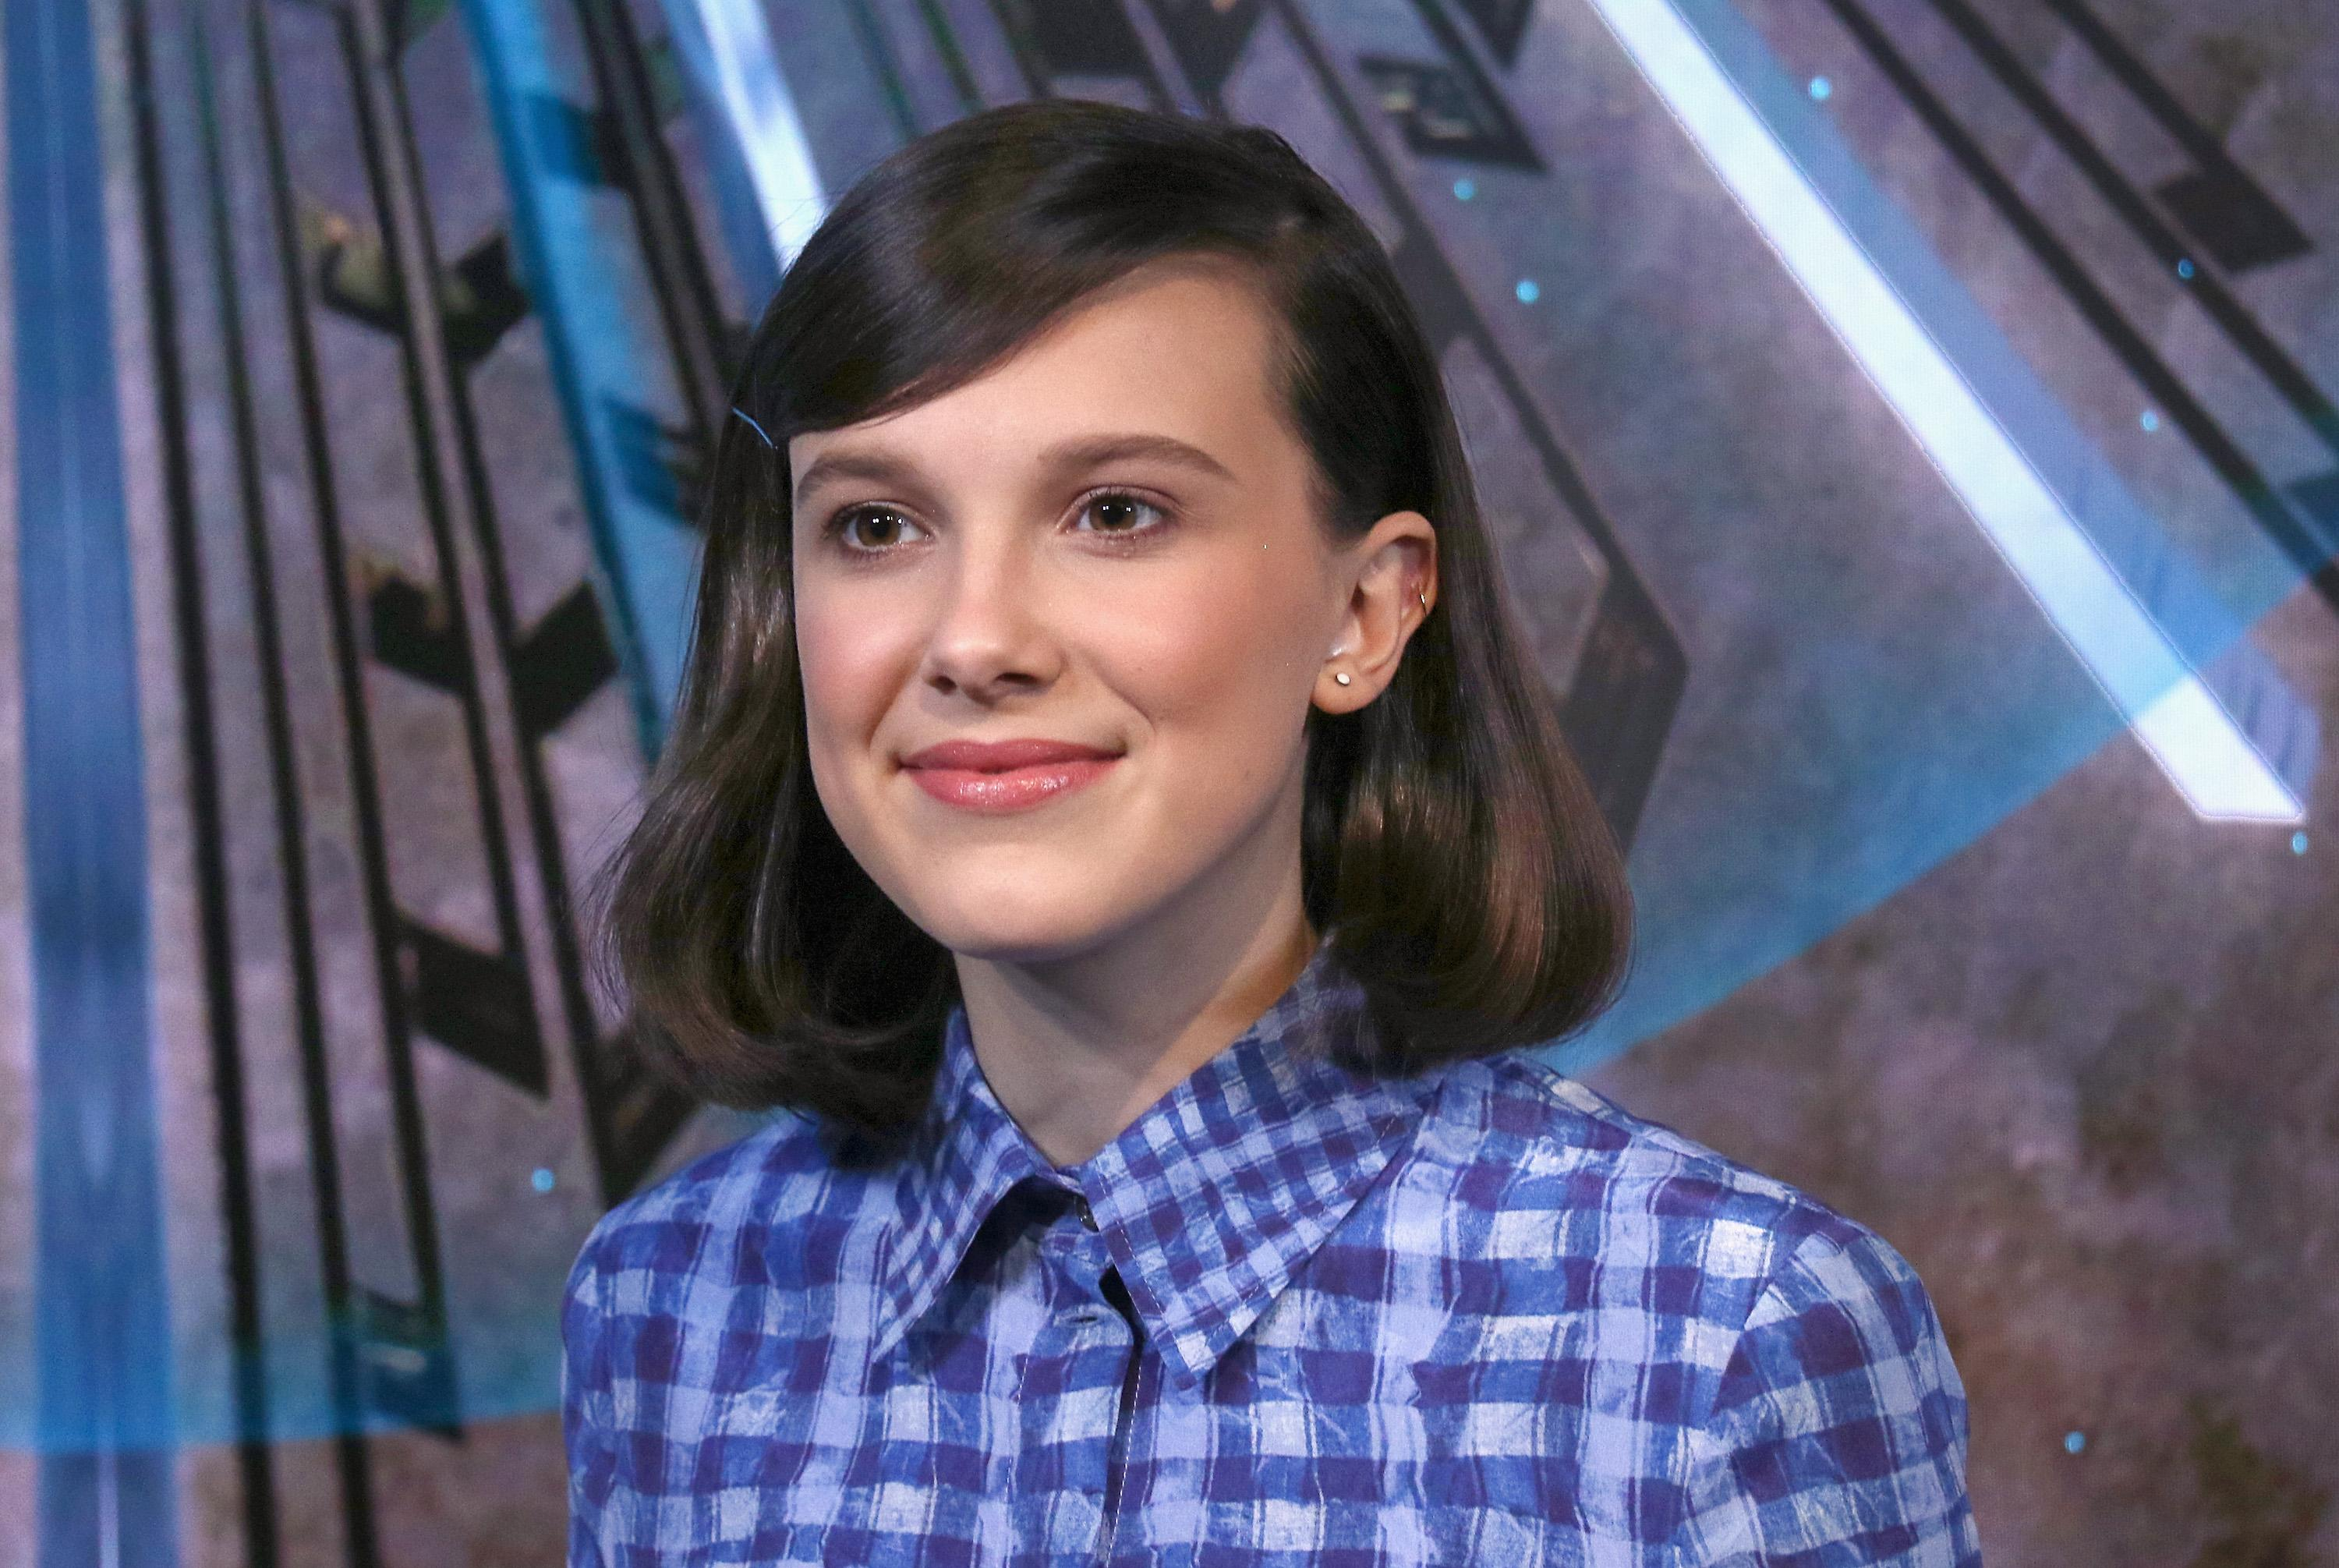 Millie Bobby Brown hits back at trolls who shamed her for dressing inappropriately